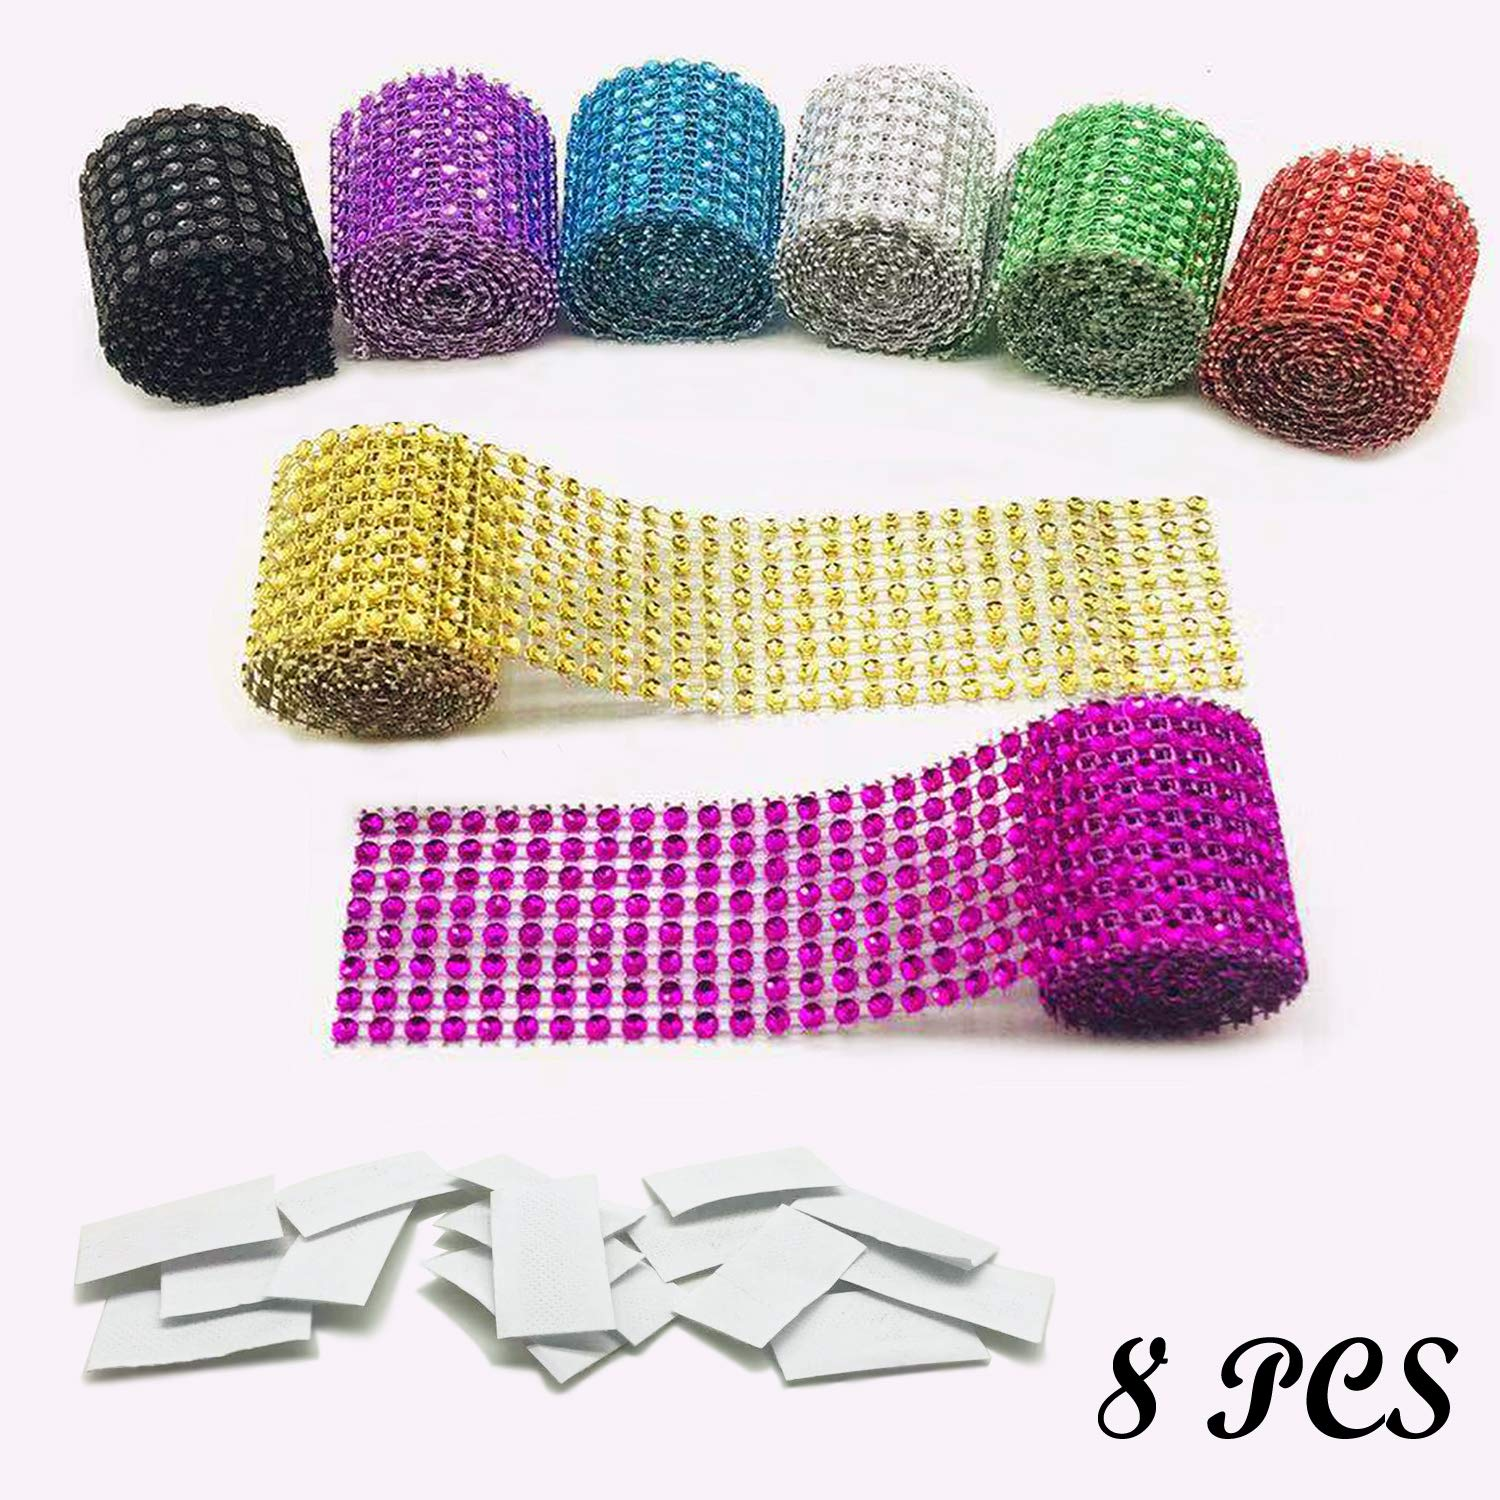 USIX 16 Rows-4.3 Wide Artificial Sparkling Glitter Pyramid Shaped Rhinestone Diamond Mesh Ribbon Webbing Wrap for DIY Arts Craft Sewing Wedding Bouquet Cake Birthday Party Decor Silver